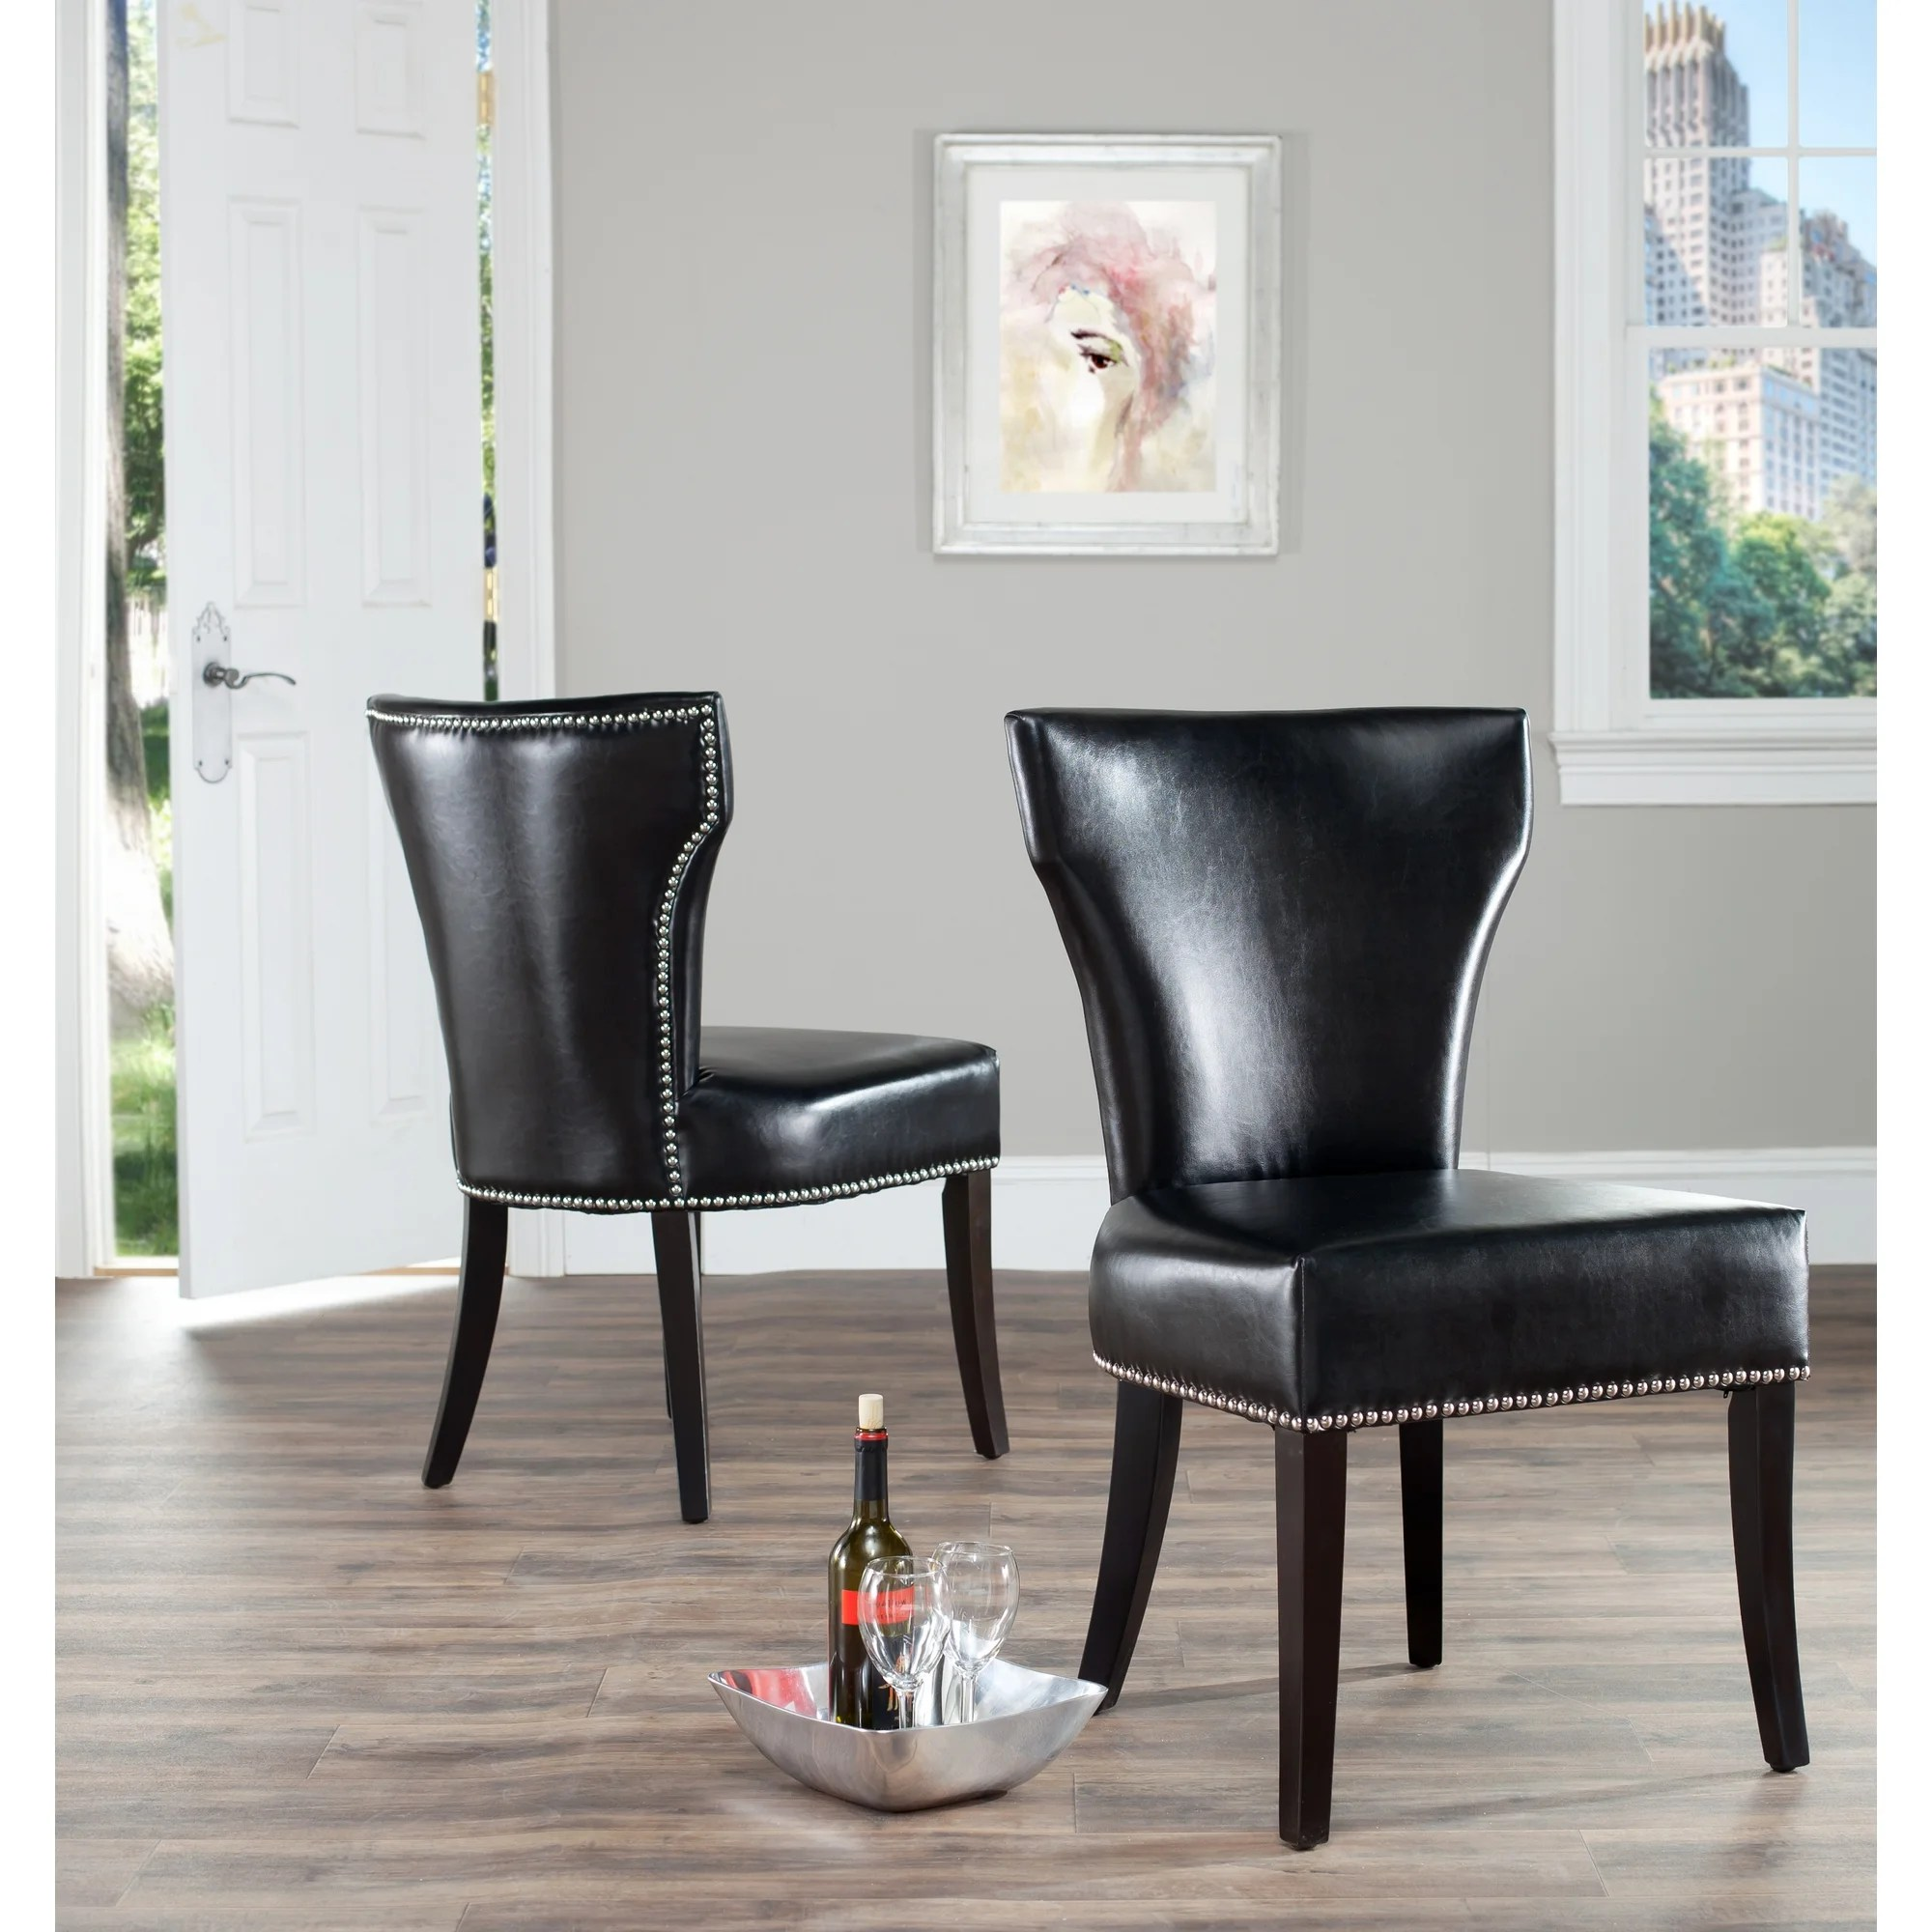 Leather Dining Chairs With Nailheads Safavieh Matty Black Leather Nailhead Dining Chairs Set